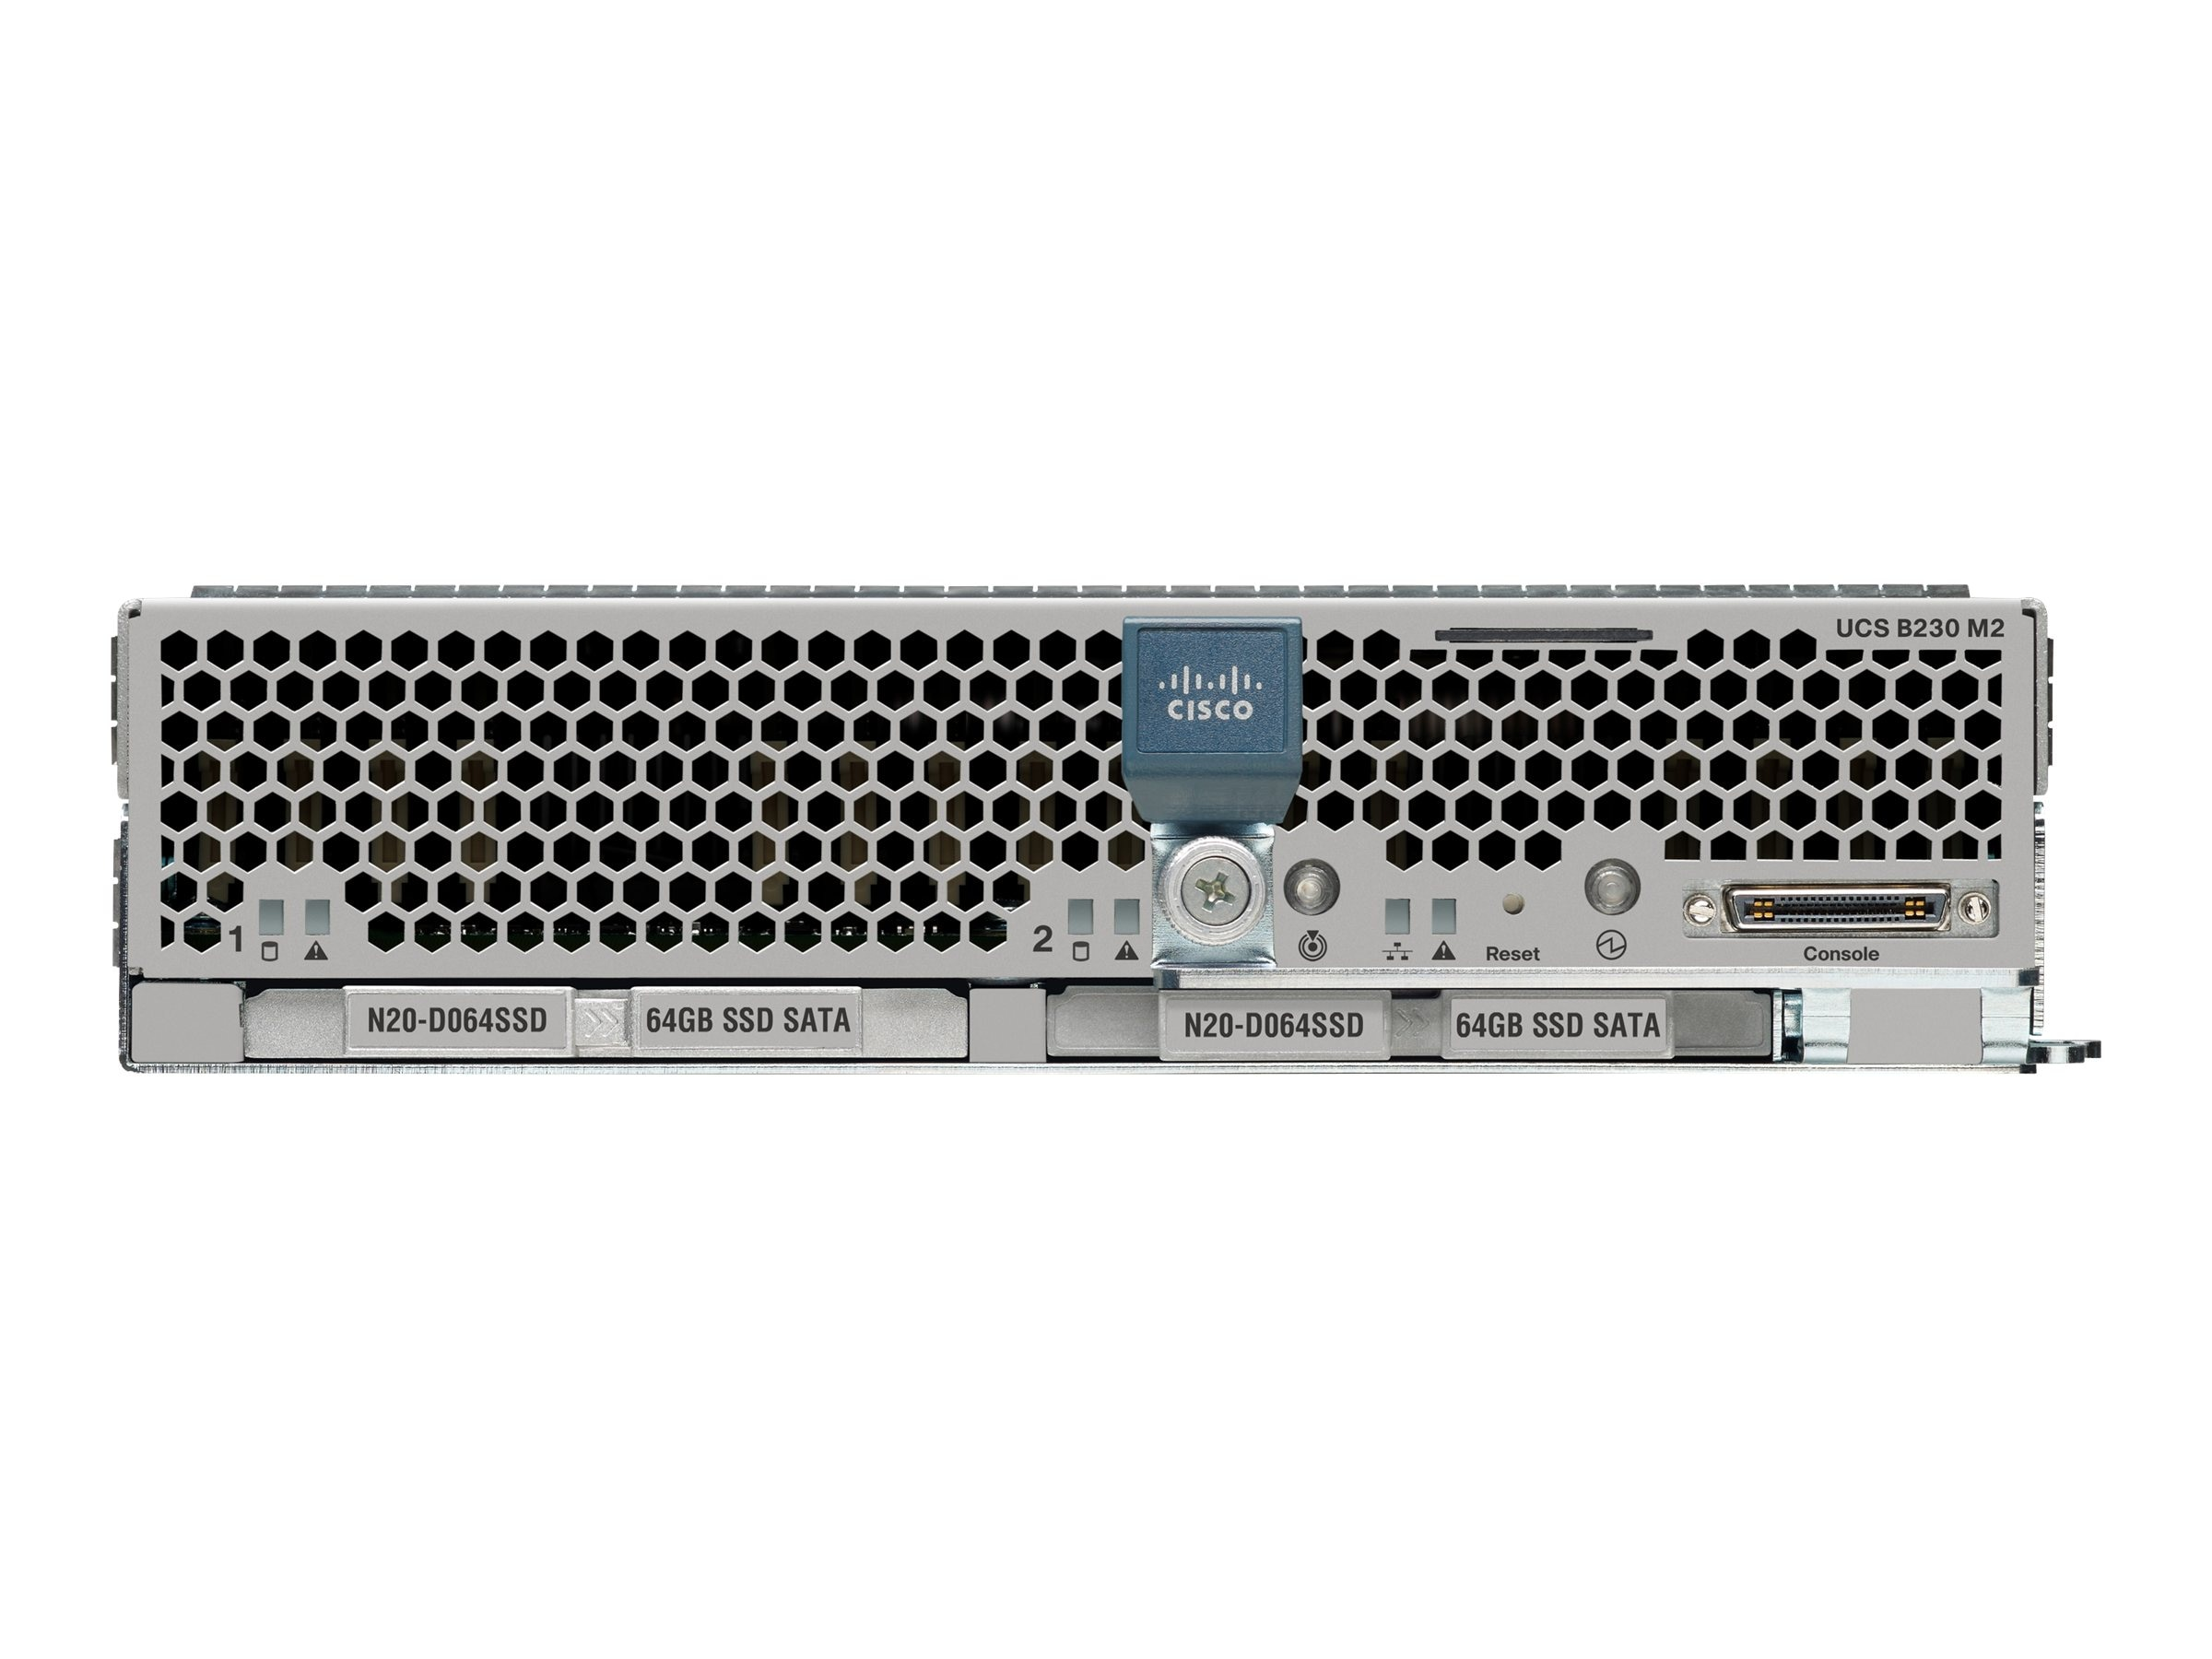 Cisco UCS B230 M2 SmartPlay Expansion Pack Blade (2x) Xeon 10C E7-2860 2.26GHz 128GB VIC1280, UCS-EZ7-B230-EX128